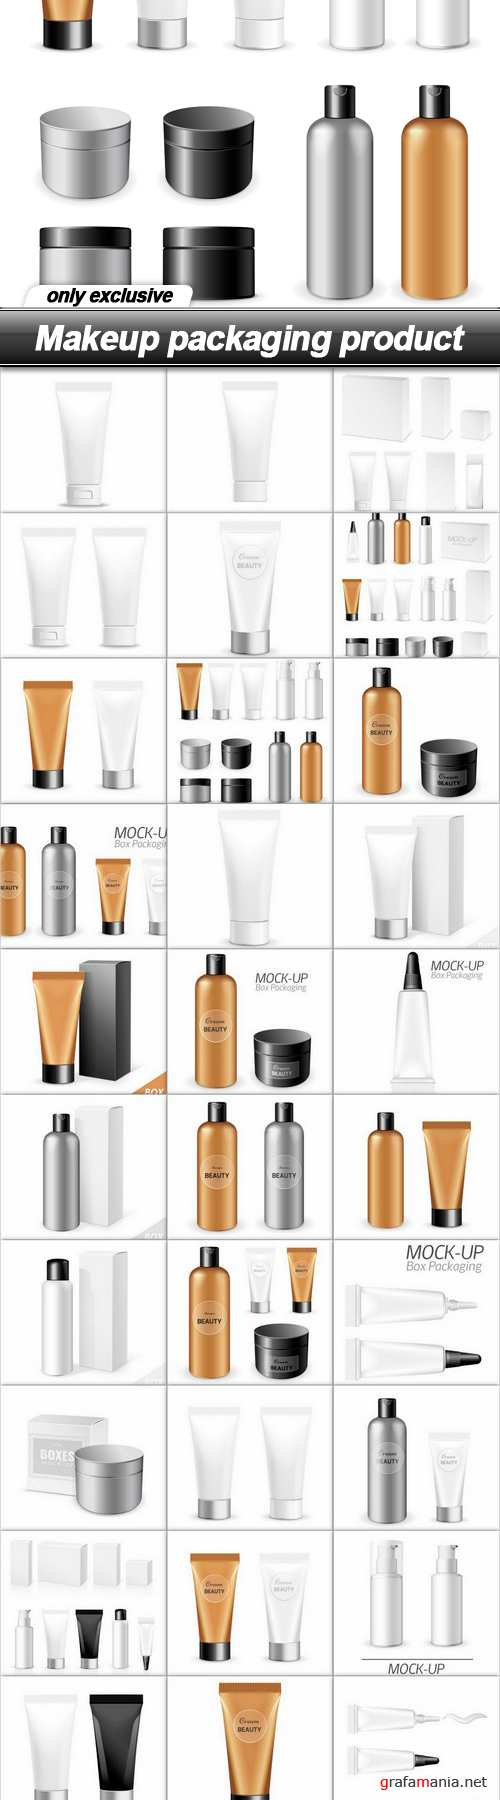 Makeup packaging product - 33 EPS